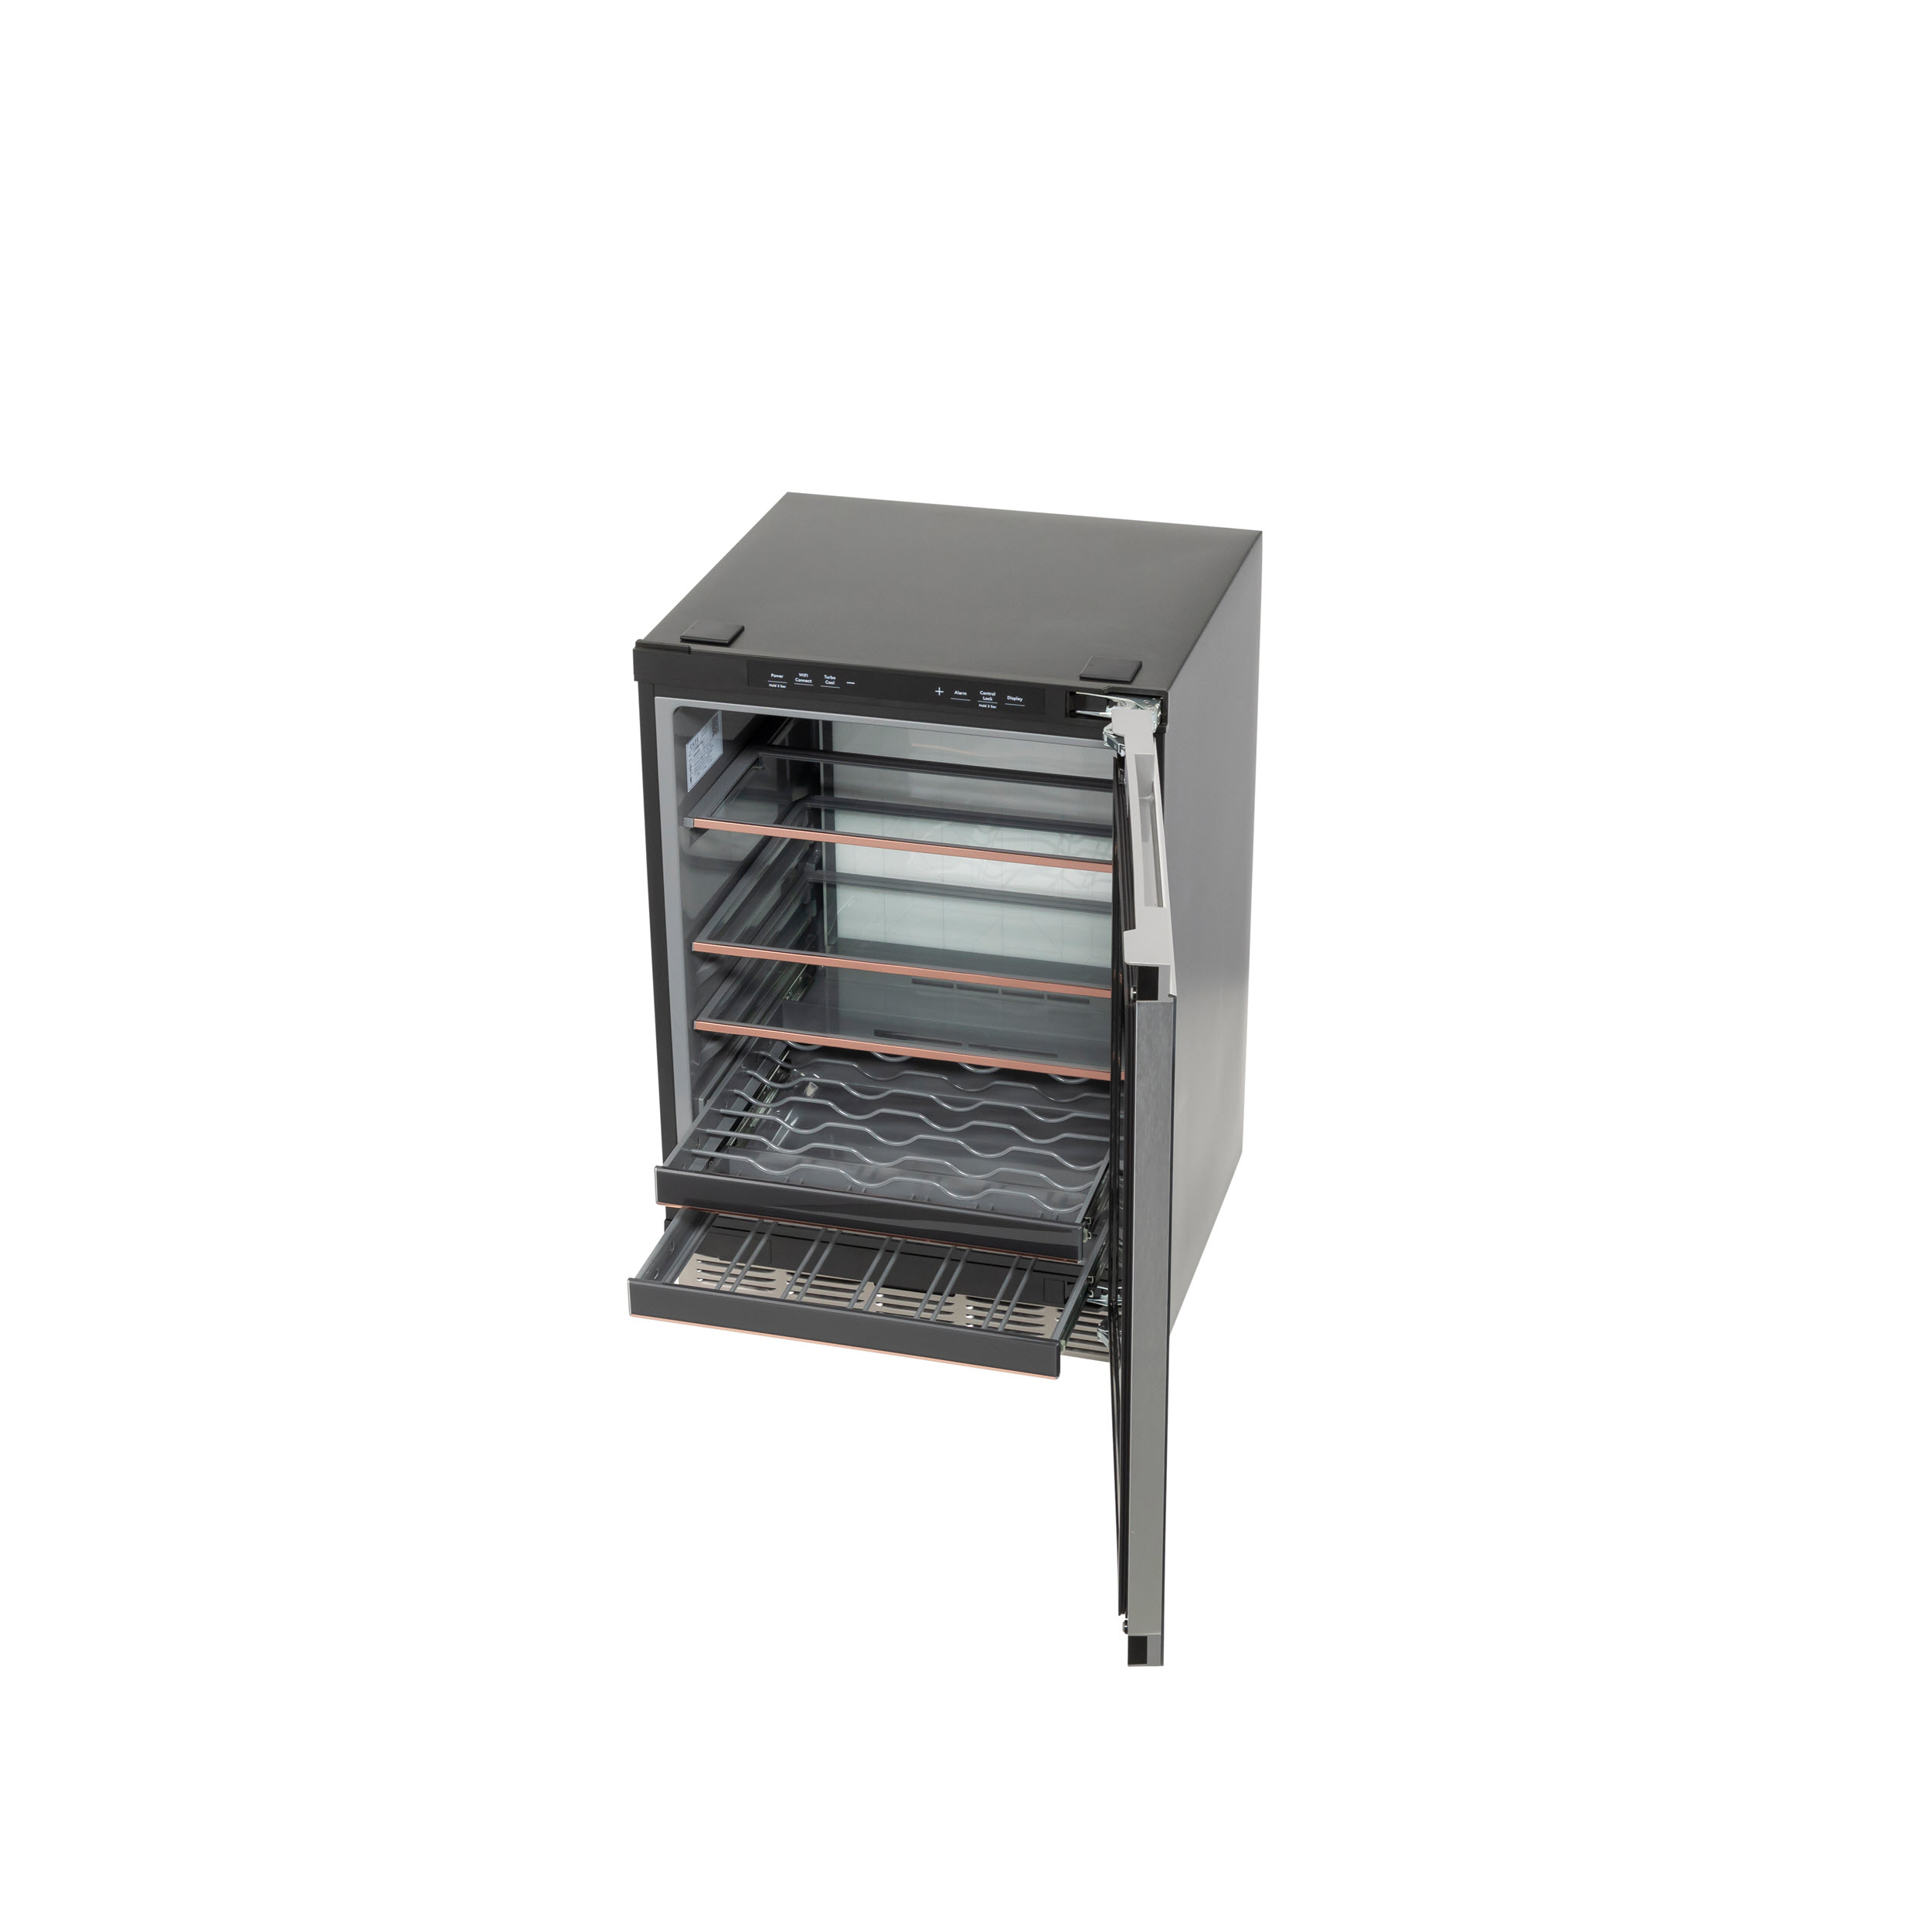 Model: CCR06BM2PS5 | Cafe Café™ Beverage Center in Platinum Glass